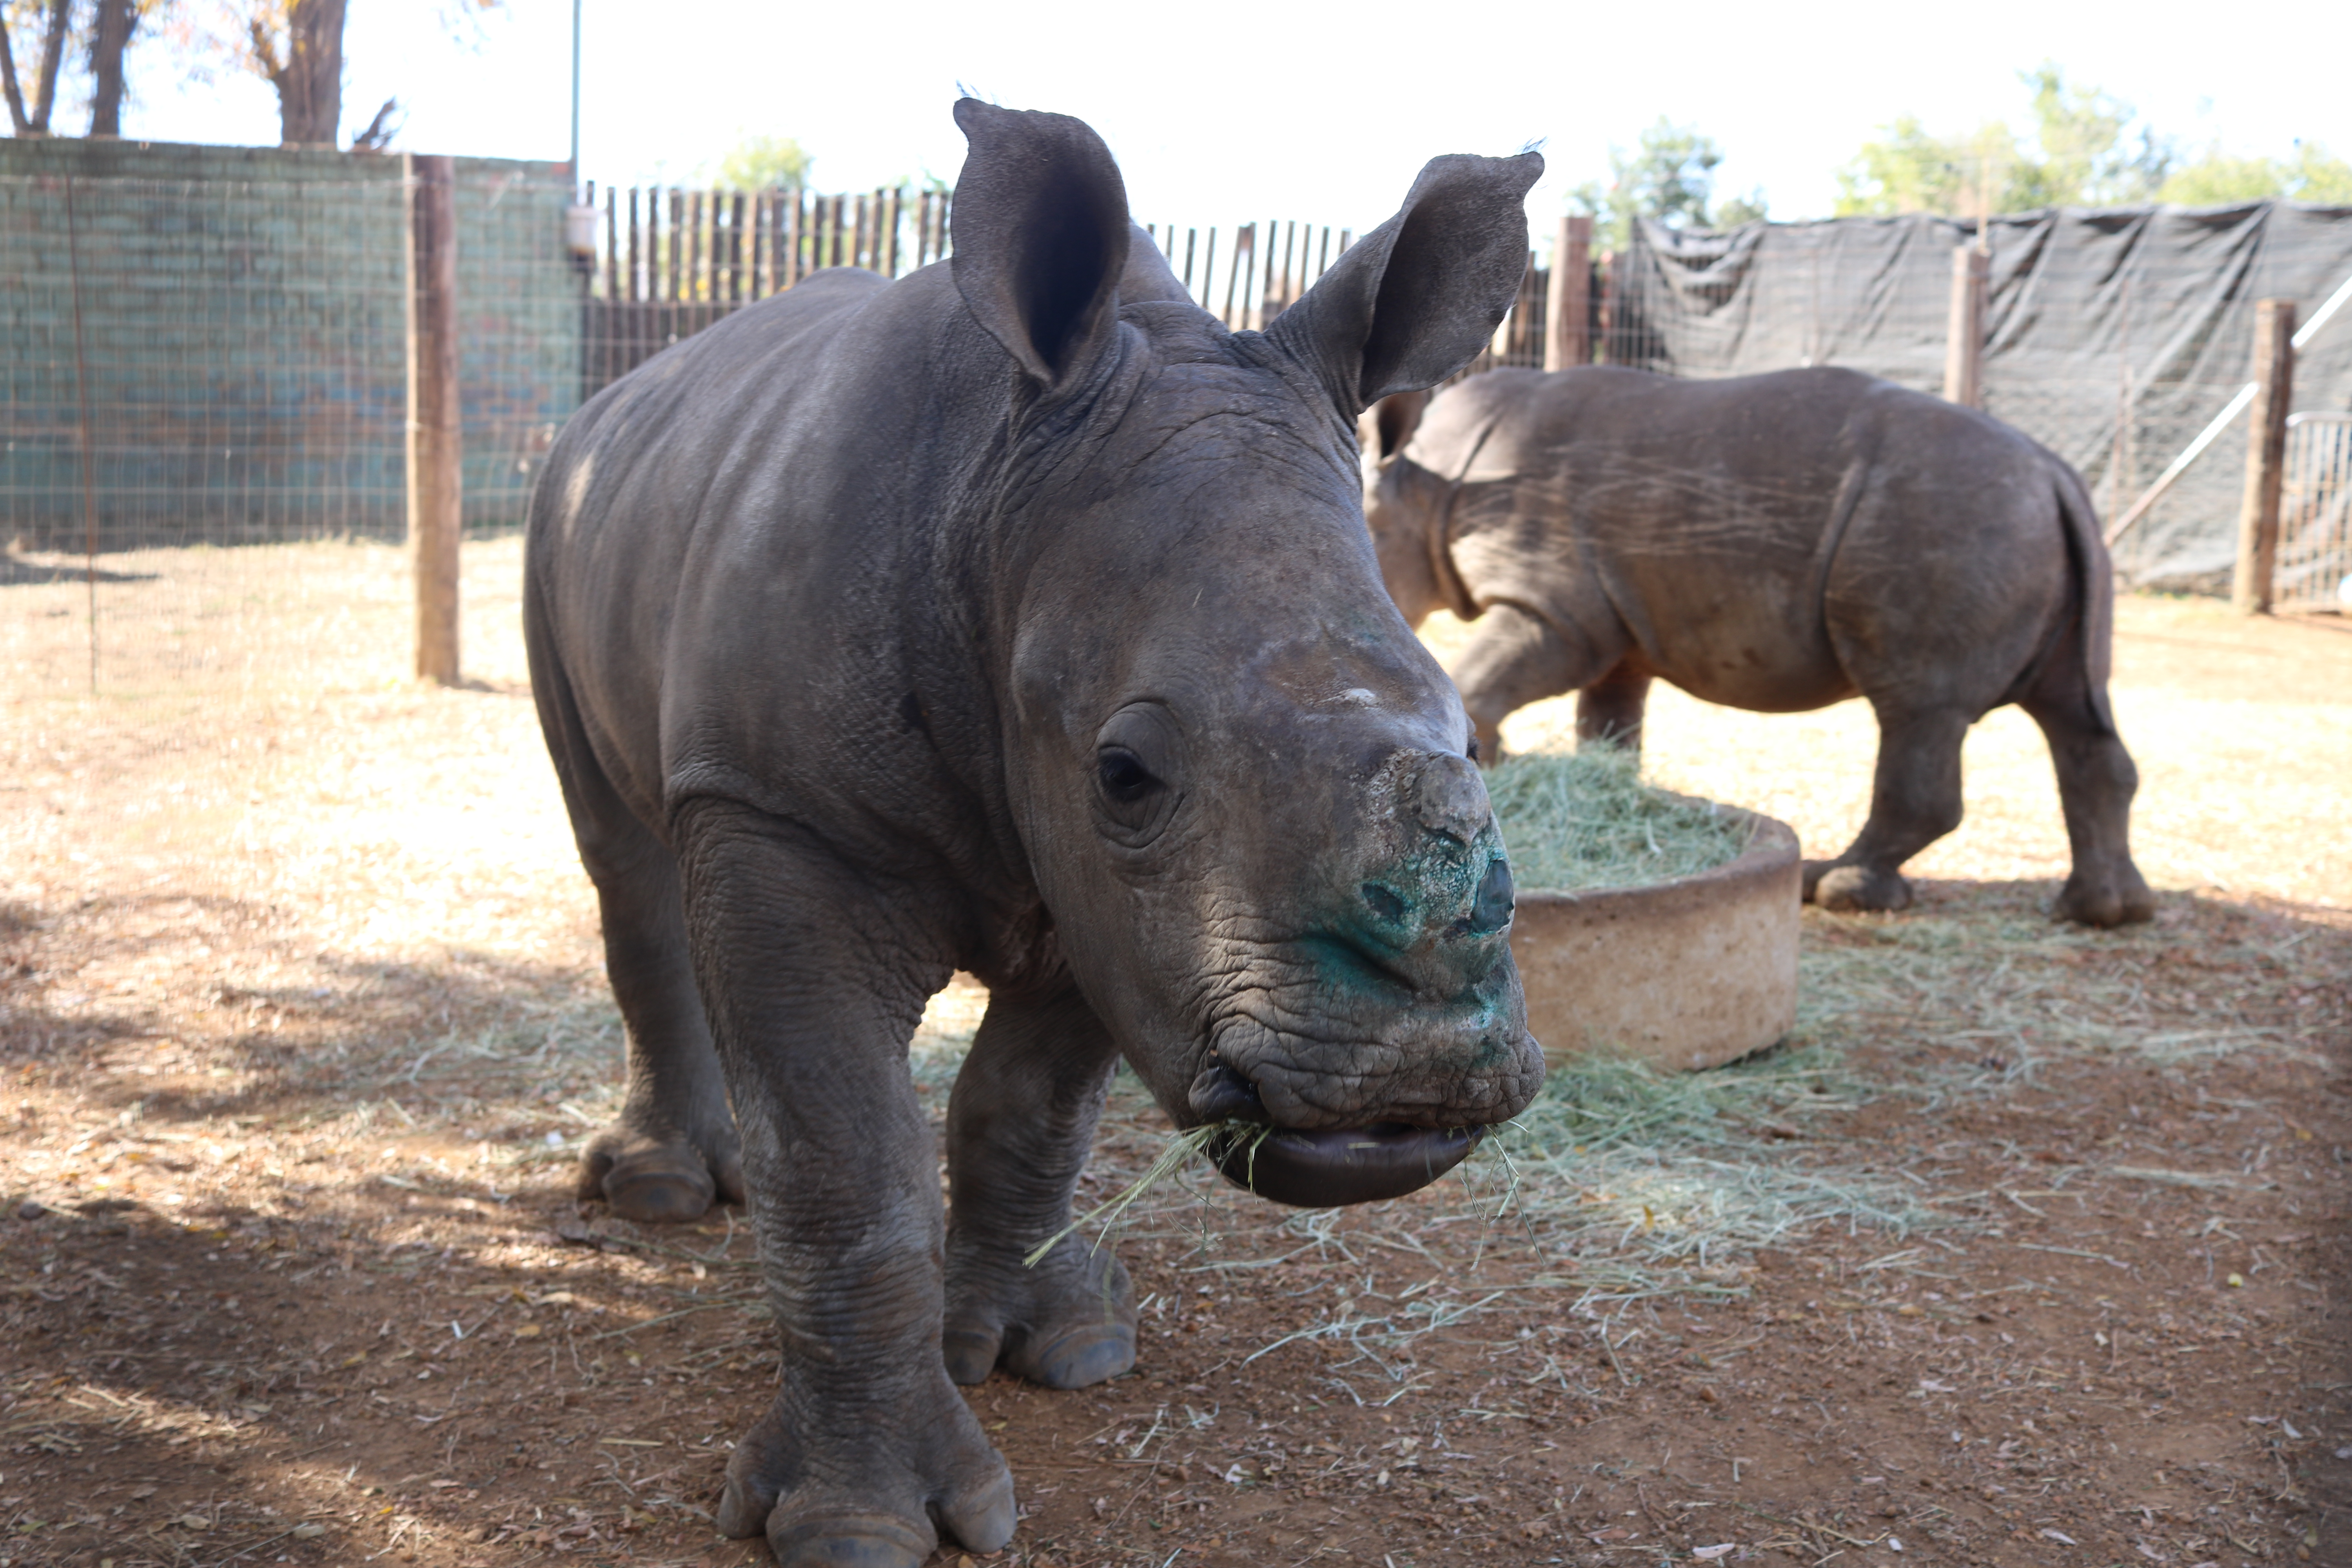 Asian demand surge feared as rhino horn auctions resume (Nikkei Asian Review)